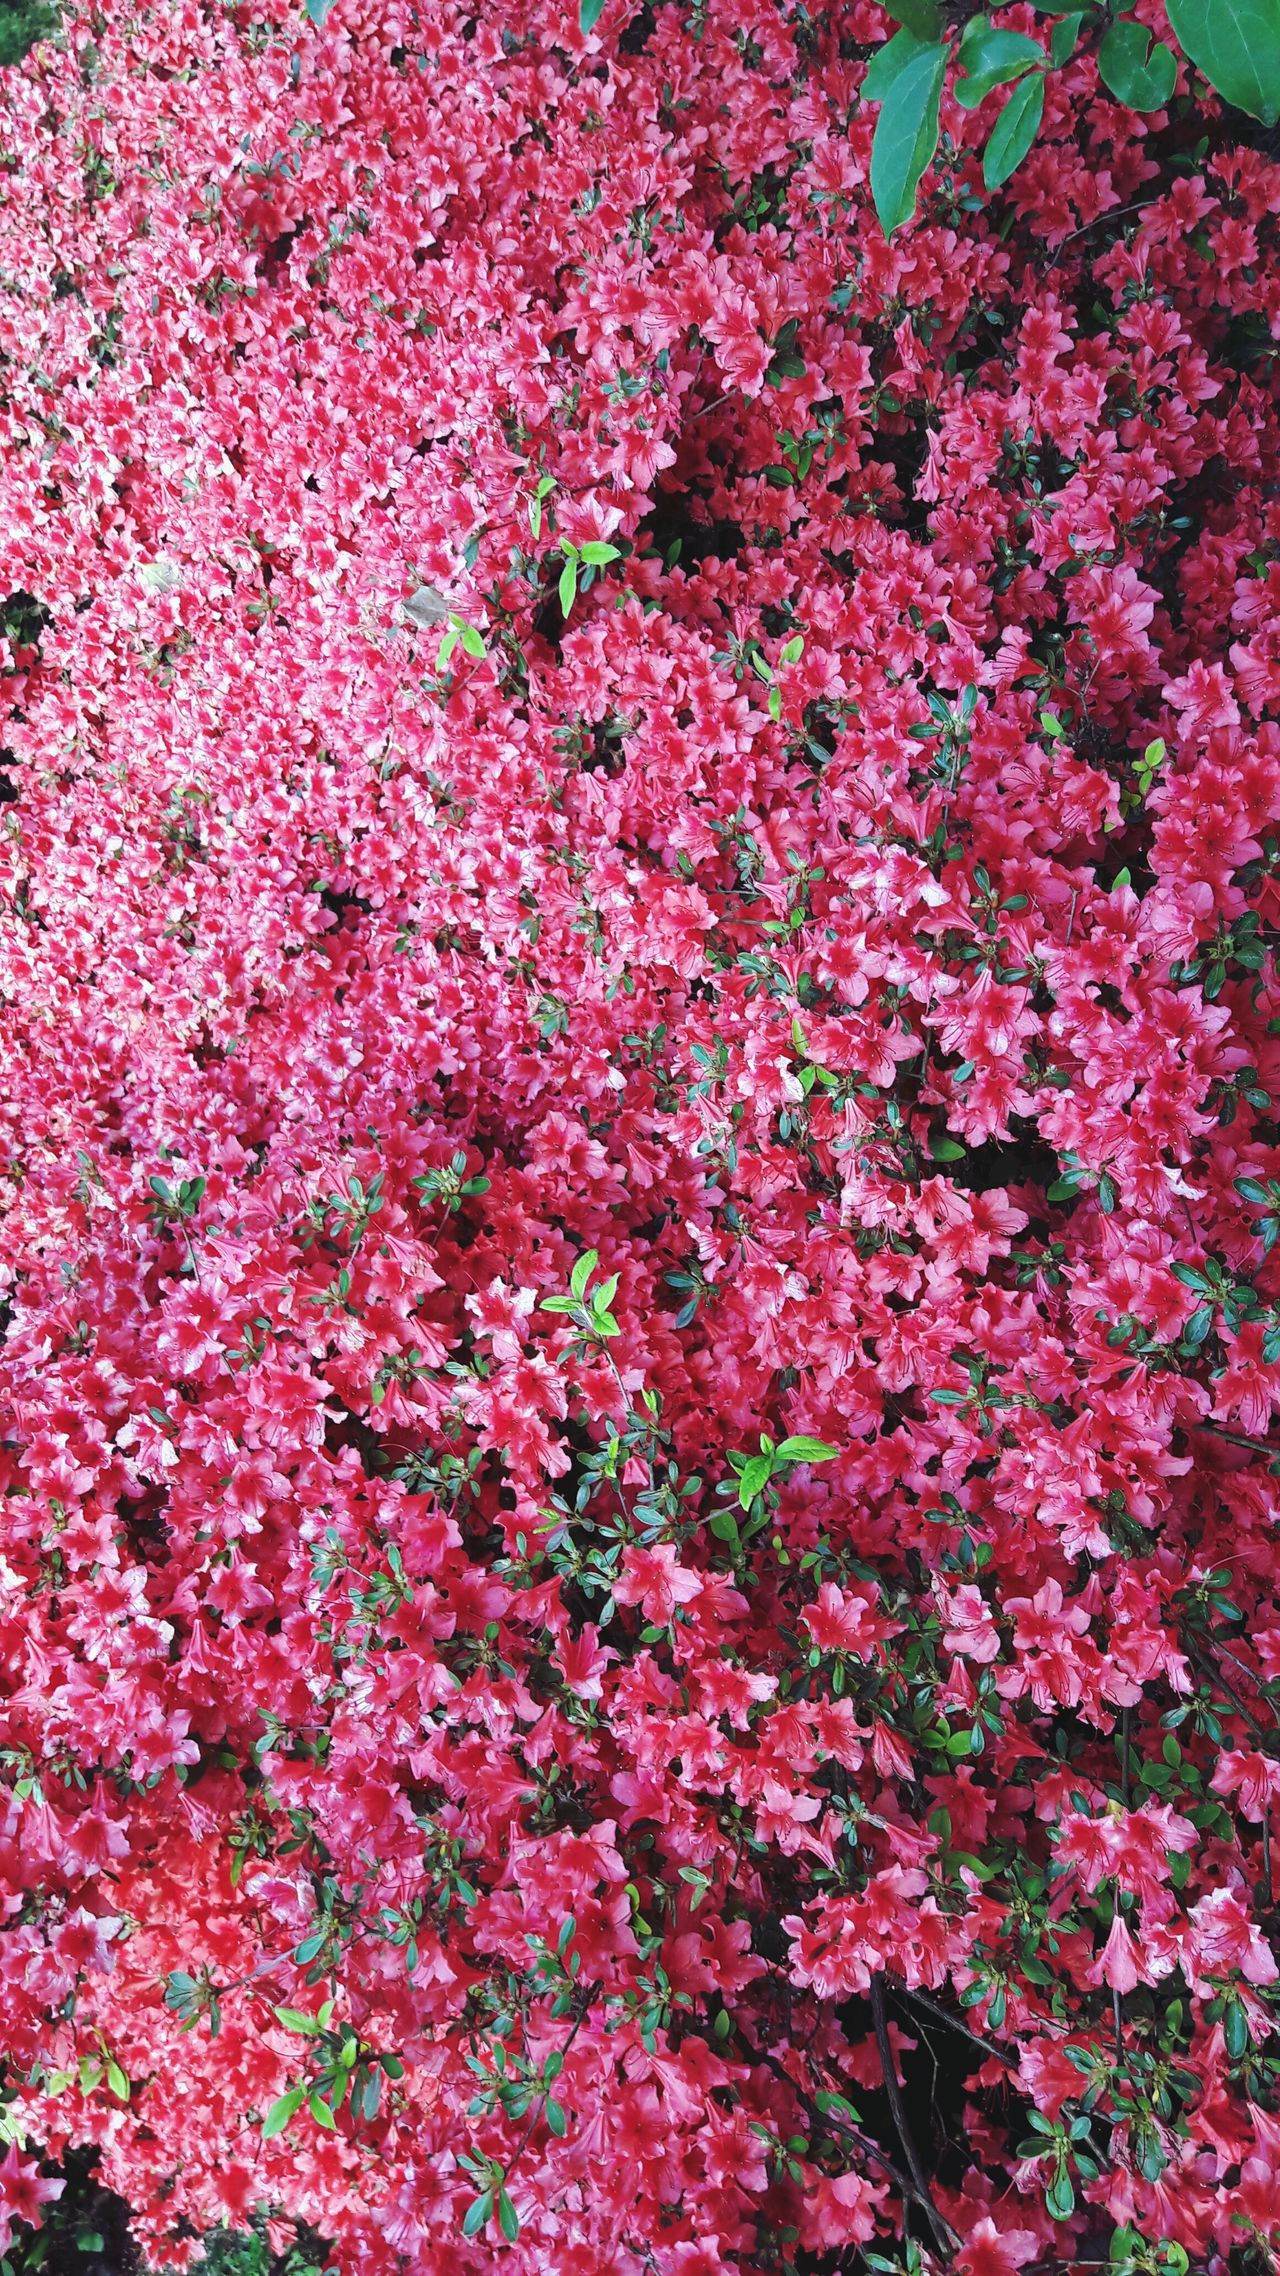 Flower Flower Carpet Pink Flower Pink Pink Color Spring Flowers Spring Garden French Flowers Park Small Flowers Garden Photography Spring Is Coming  Spring Time Pınky Close Up Close-up Outdoors Growth No People Day Fragility Freshness Beauty In Nature